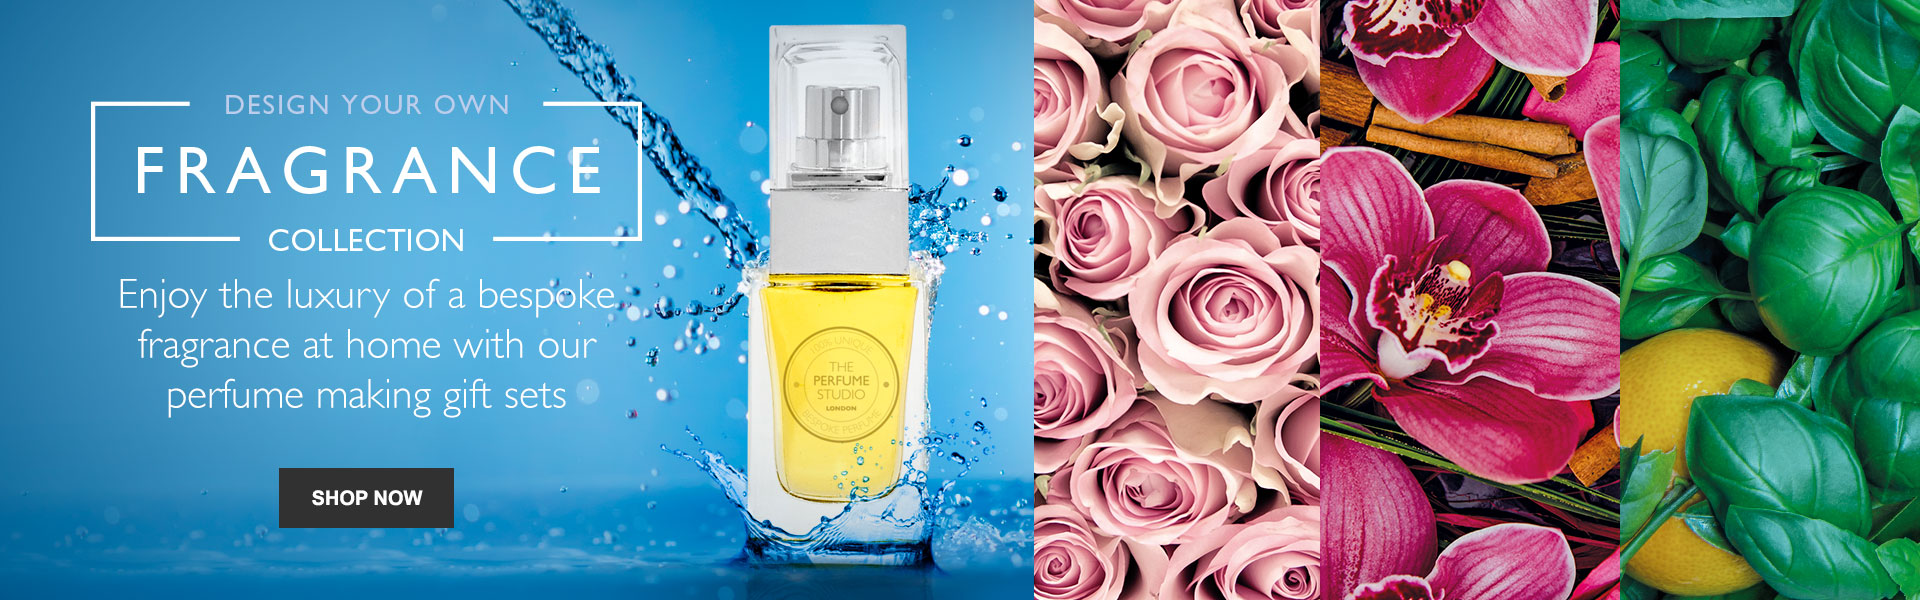 Design Your Own Fragrance Collection - Enjoy the luxury of a bespoke fragrance at home with our perfume making gift sets